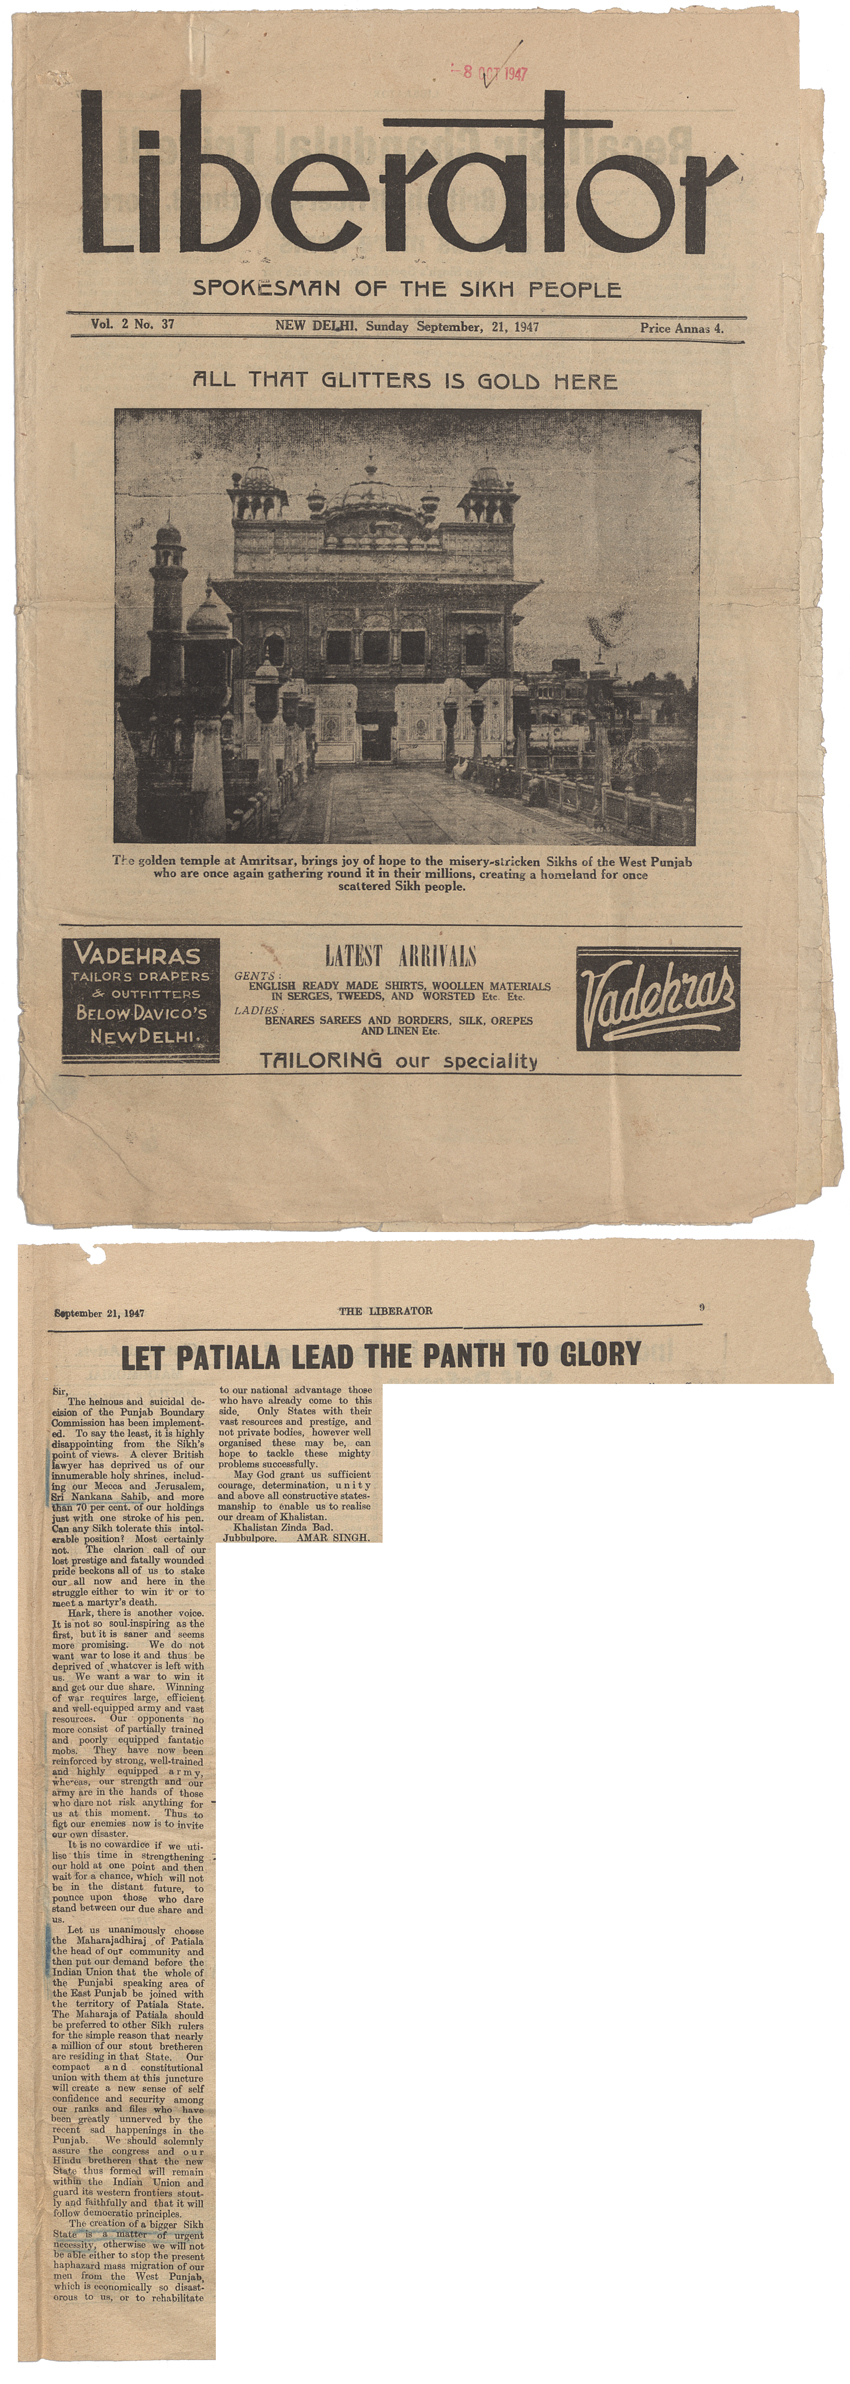 The Liberator, a Sikh newspaper published in India (New Delhi), 21st September 1947 (WO 208/3811)